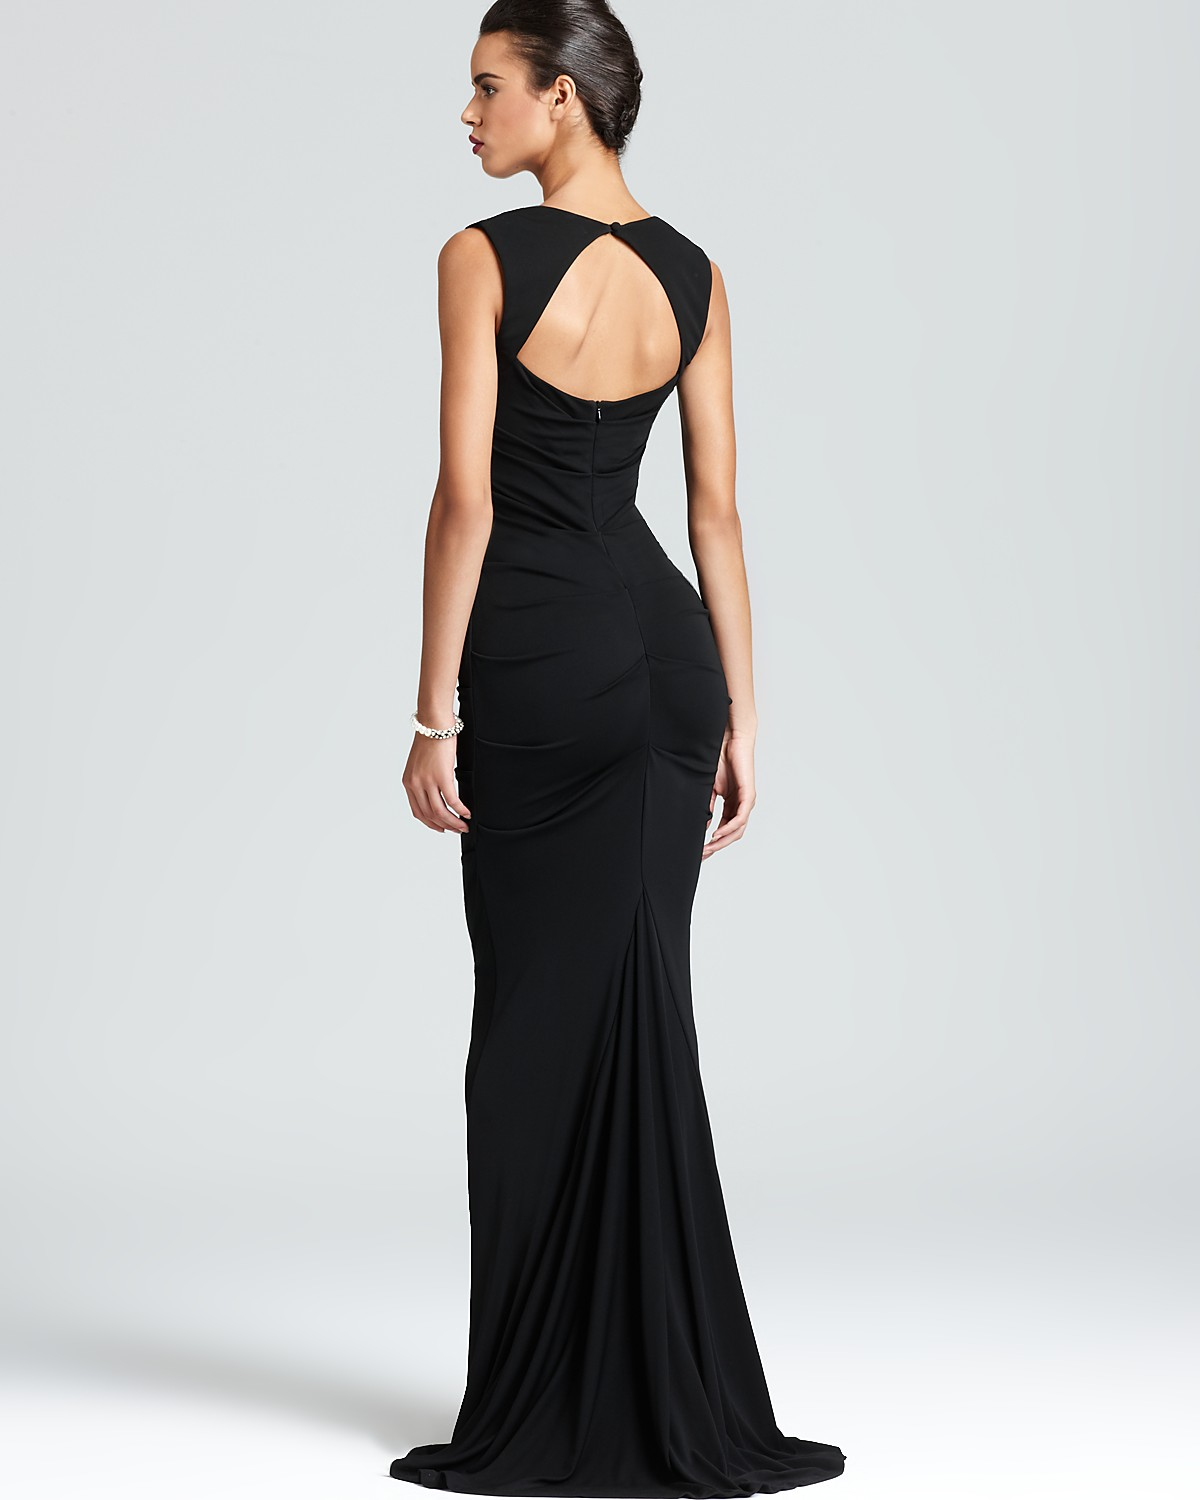 Nicole miller gown sleeveless stretch bloomingdales nicole miller gown sleeveless stretch bloomingdales ombrellifo Images